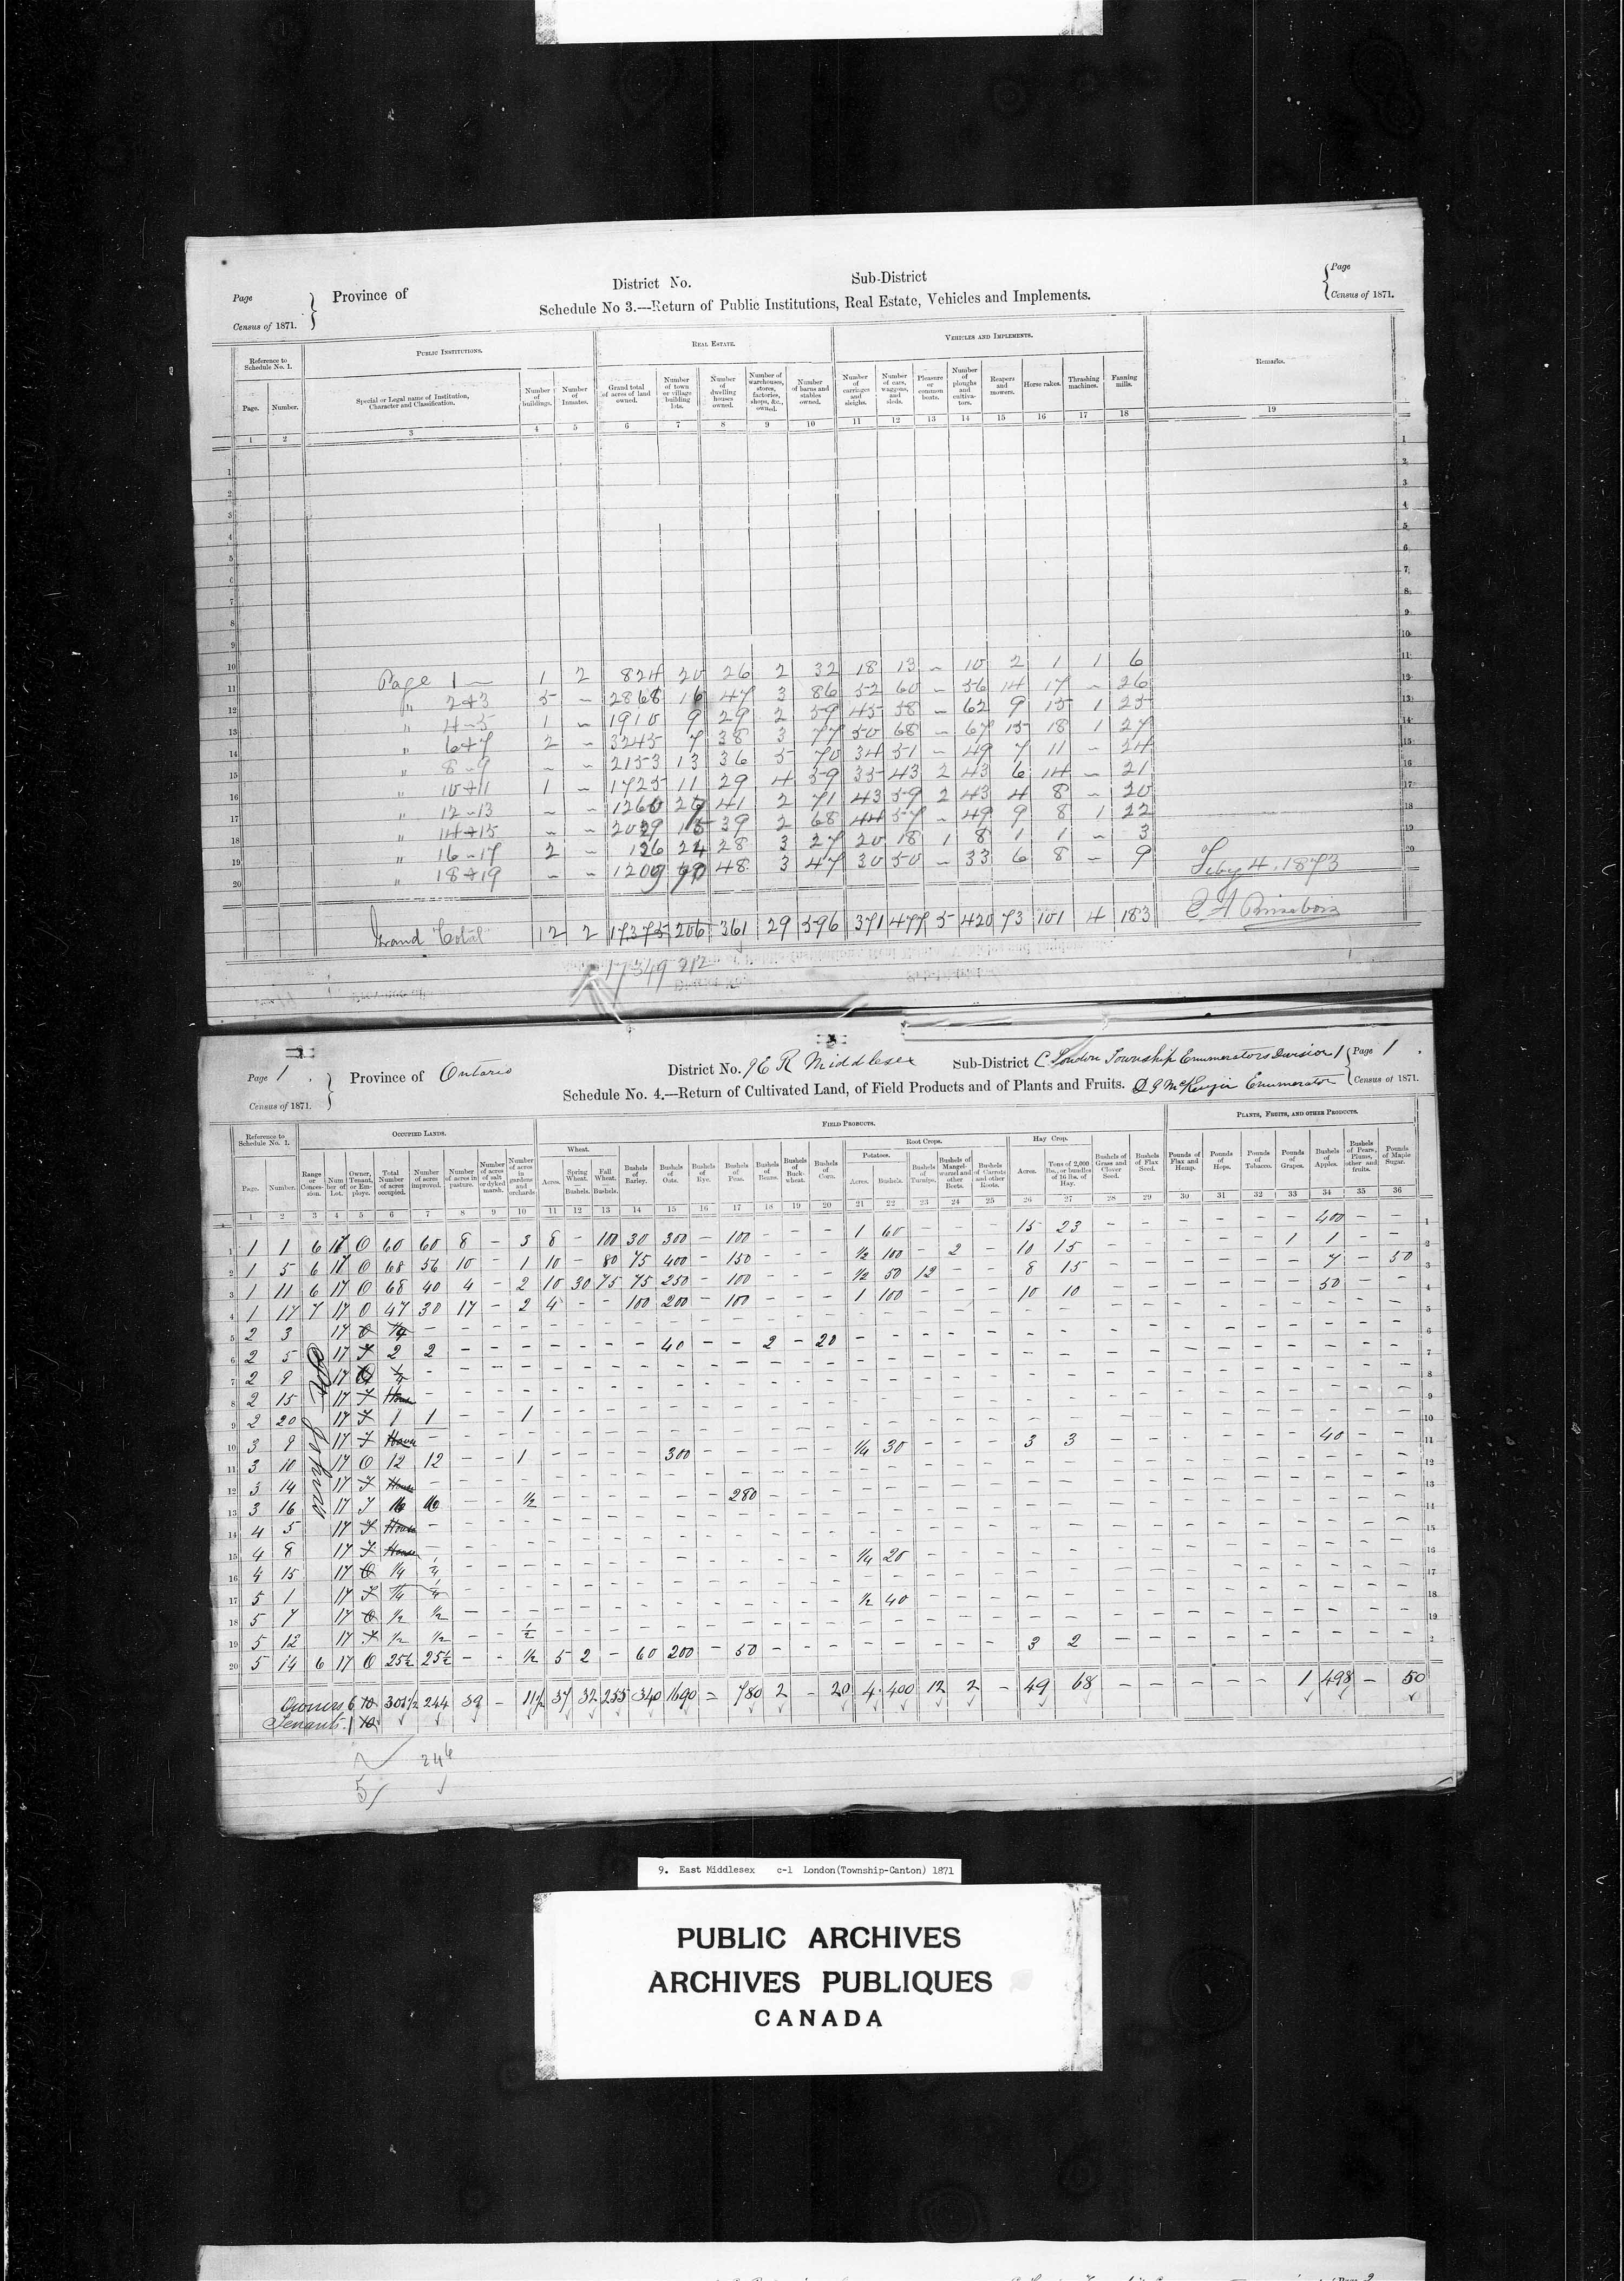 Title: Census of Canada, 1871 - Mikan Number: 142105 - Microform: c-9905